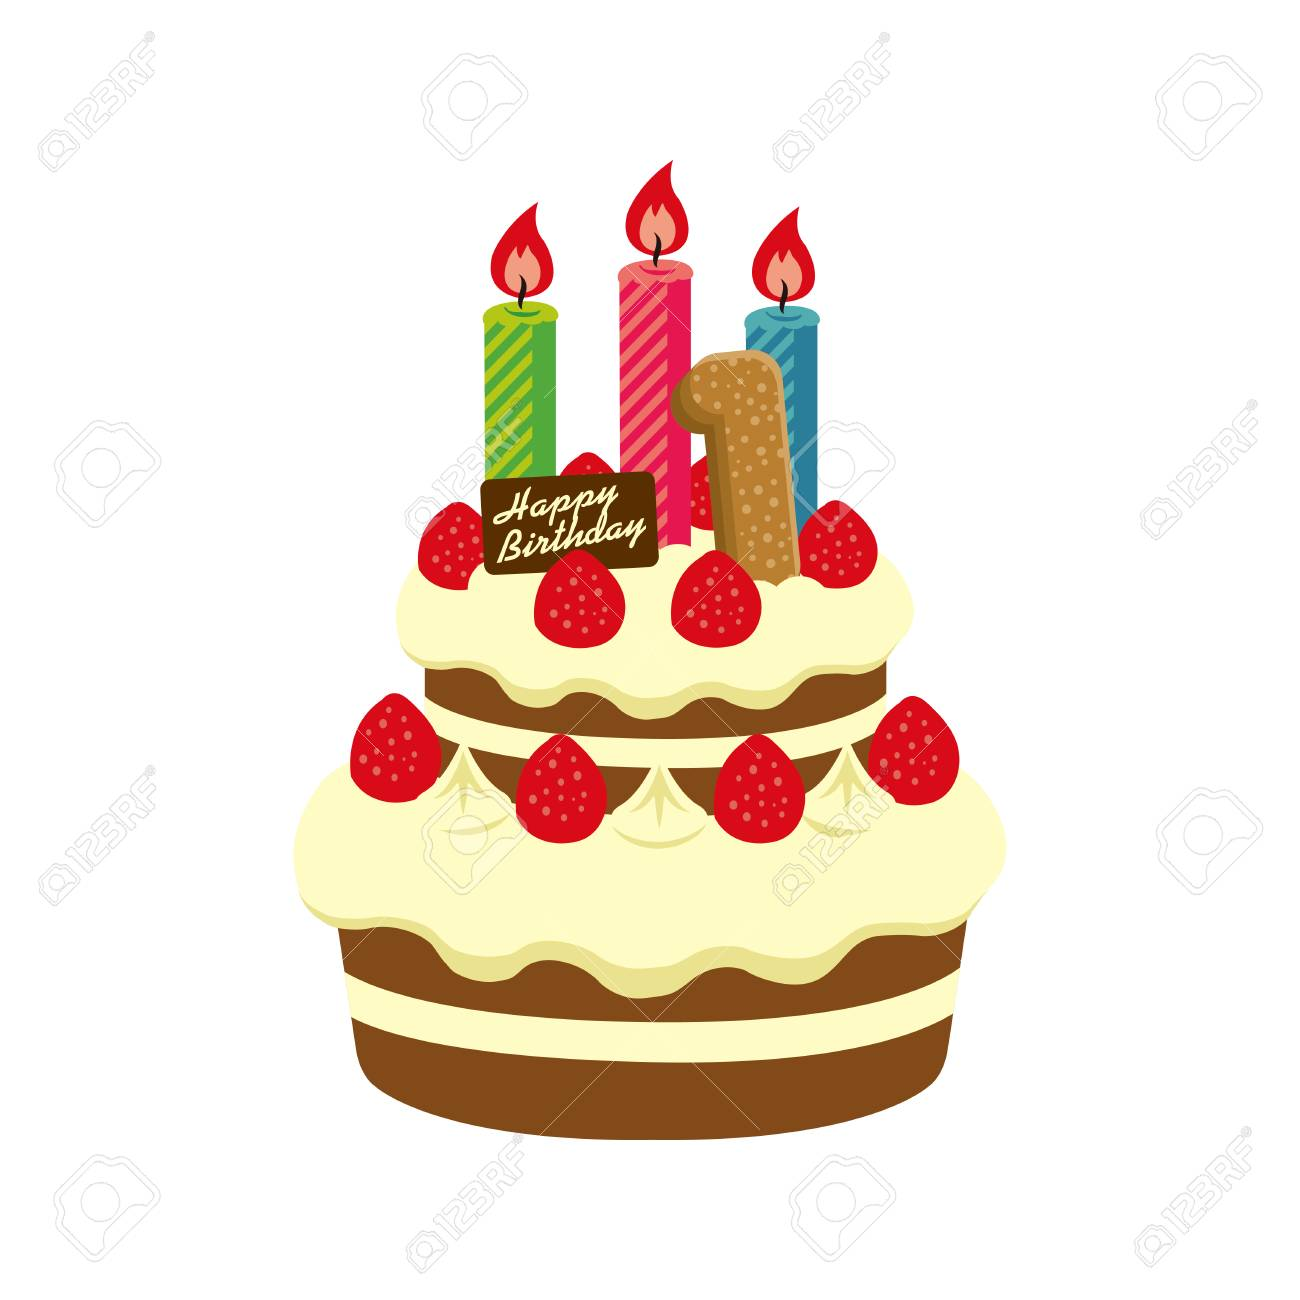 Birthday Cake Illustration For 1 Year Old Stock Vector